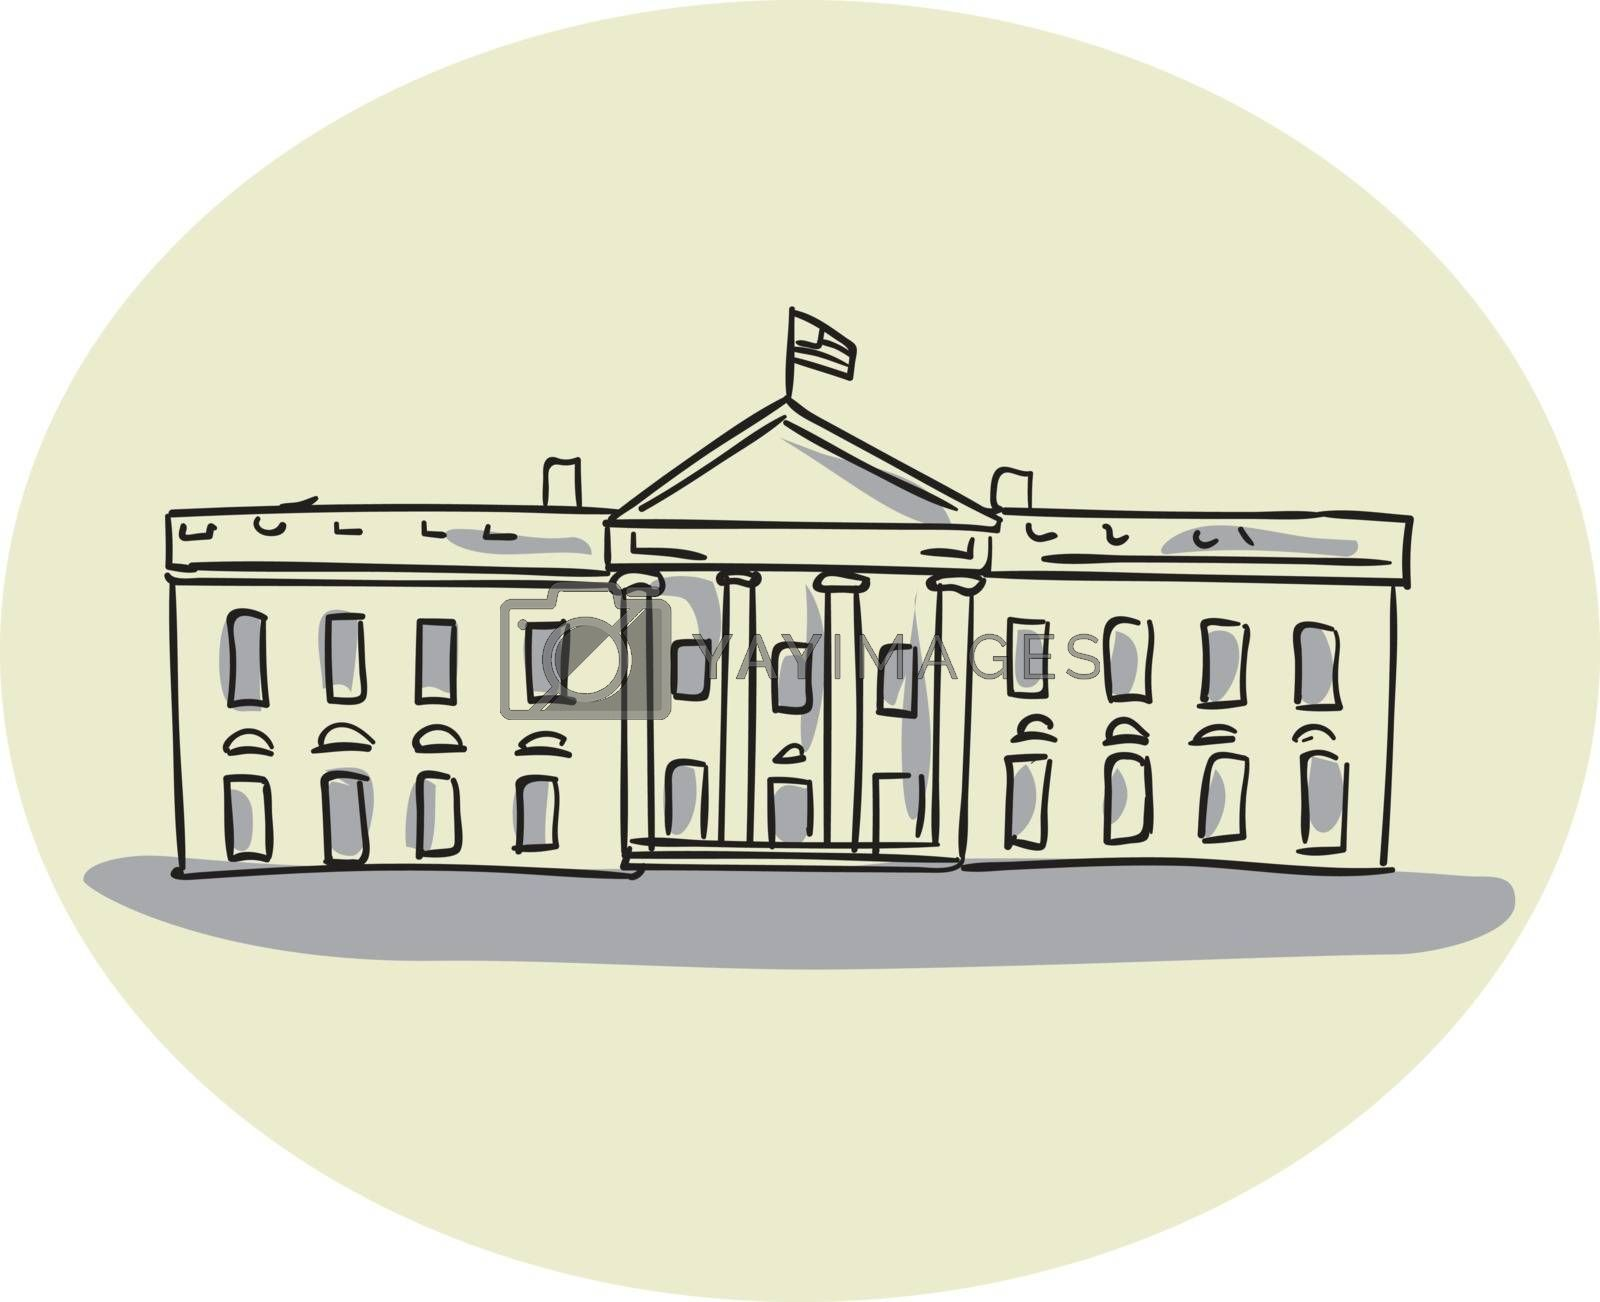 Drawing sketch style illustration of the White House building set inside oval shape viewed from front set on isolated background.